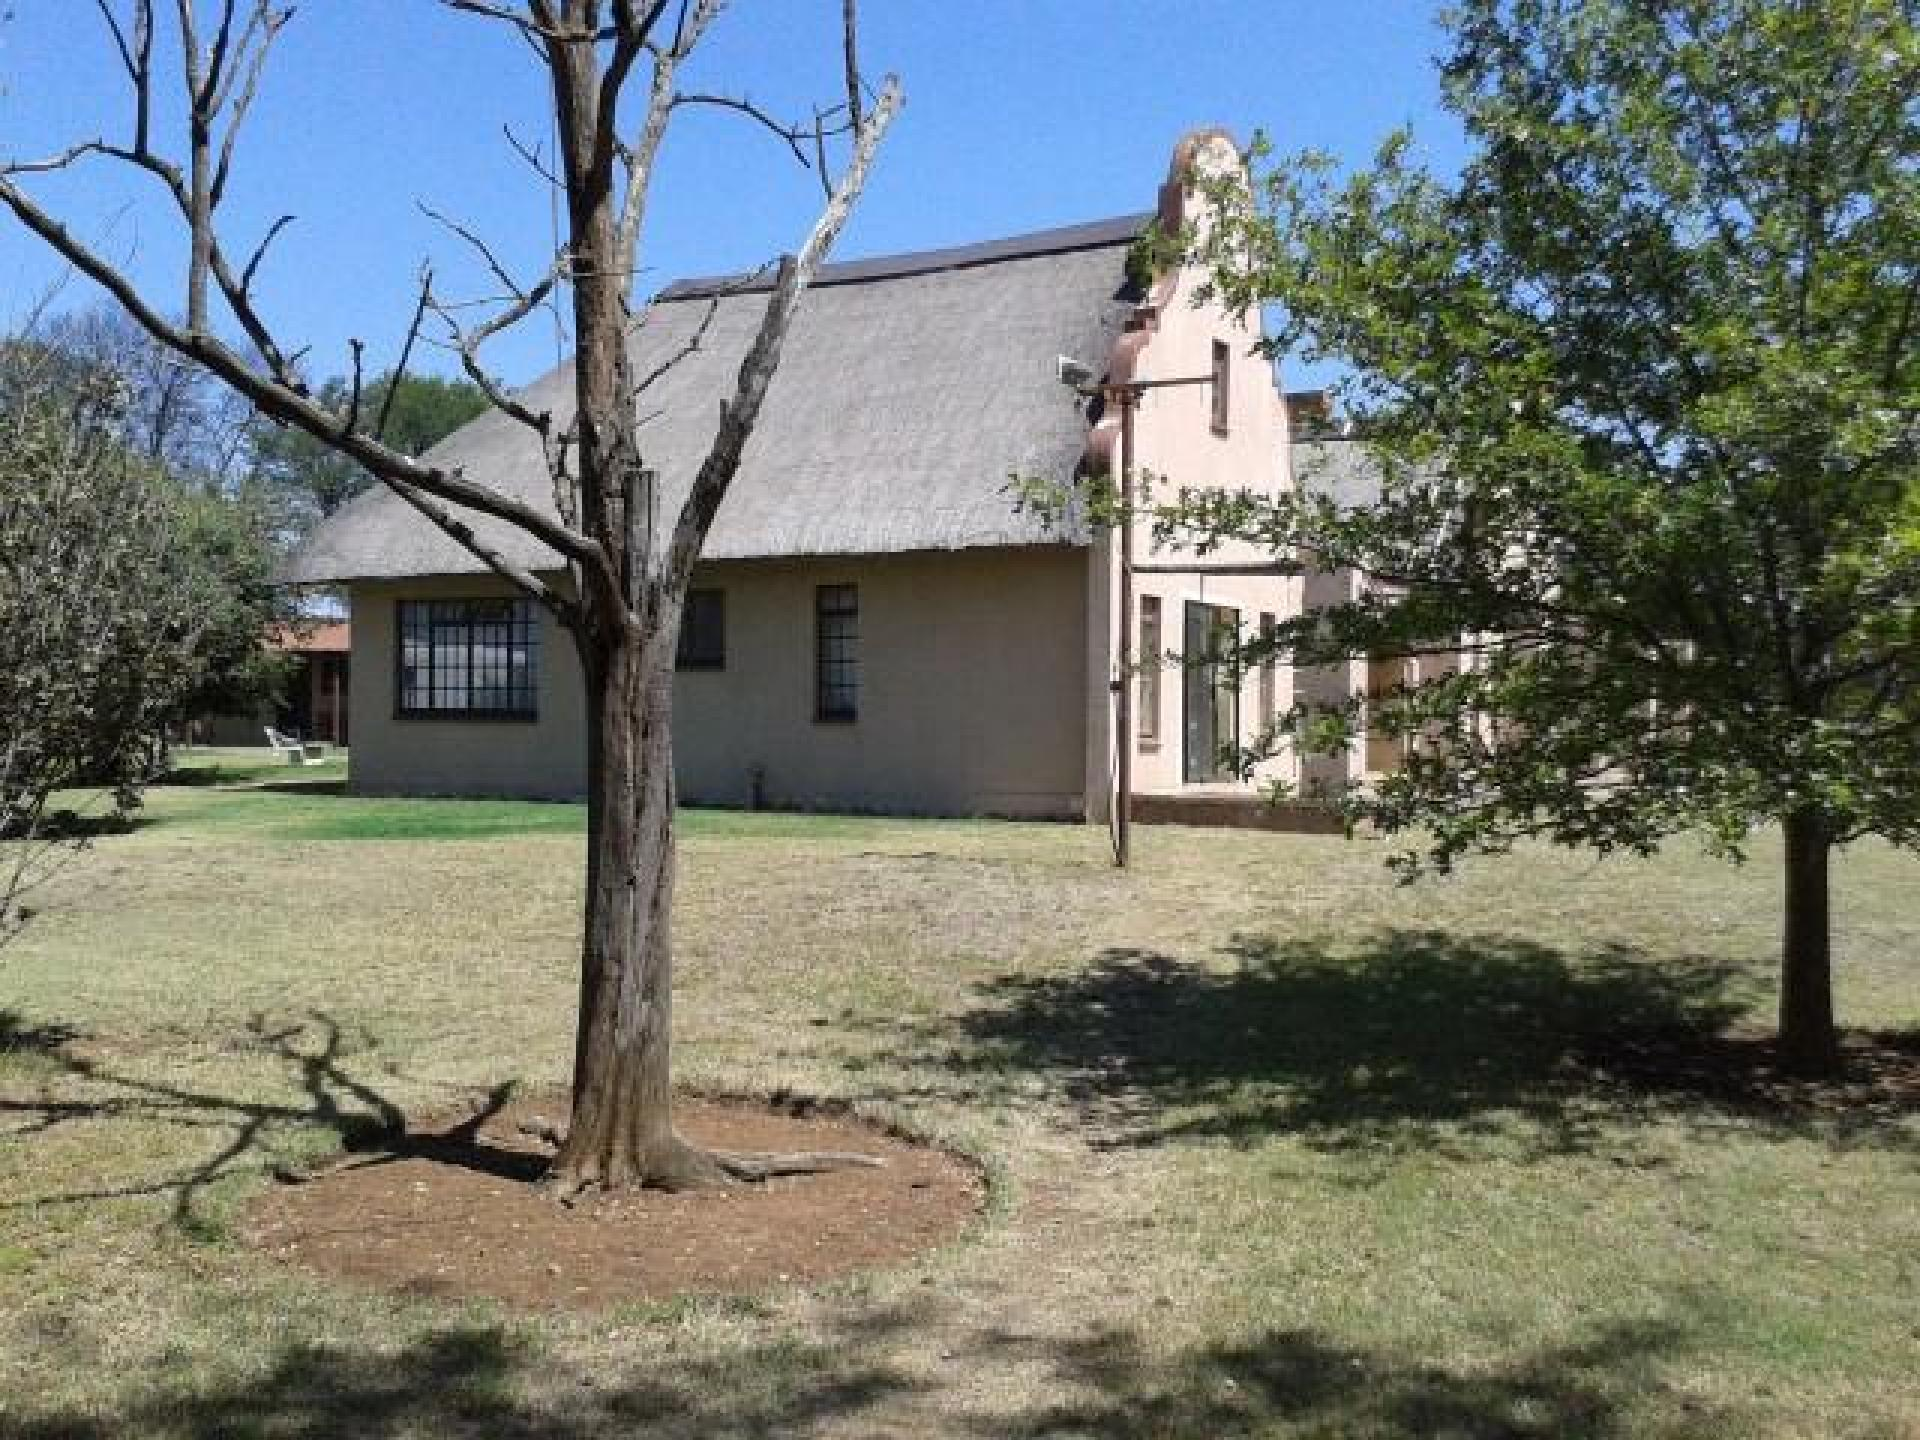 Front View of property in Parys